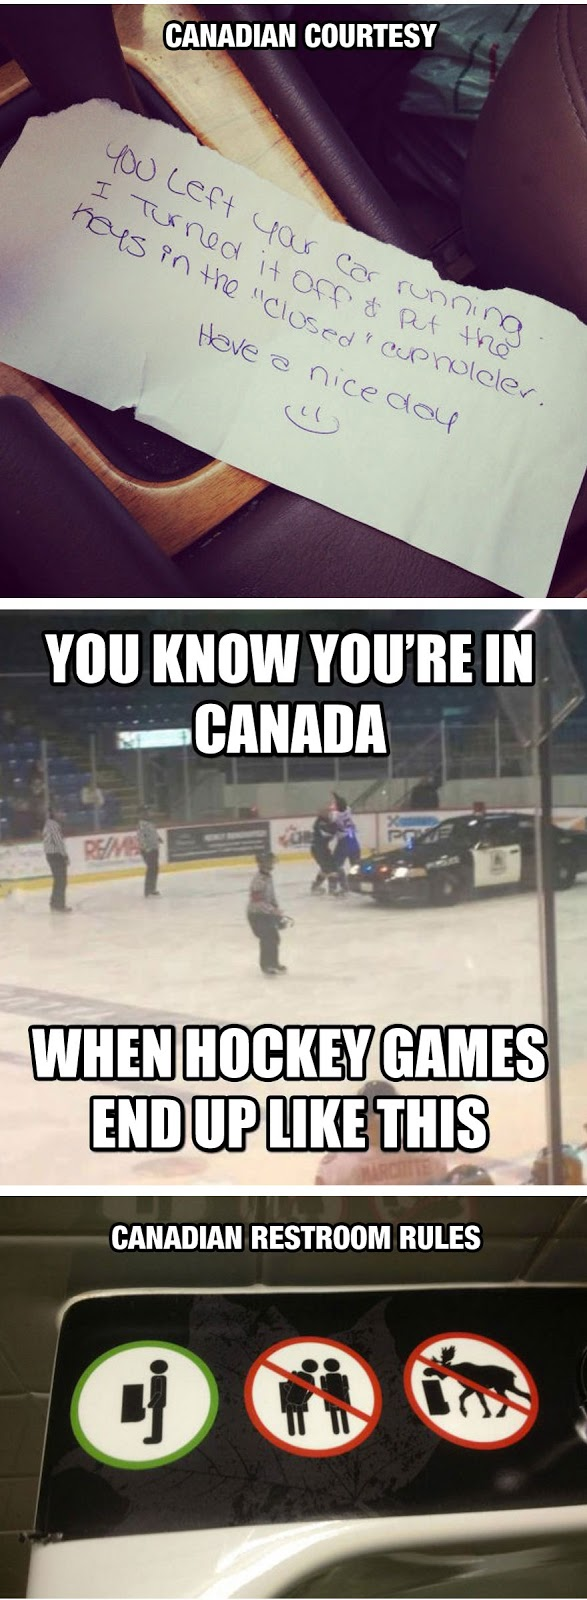 We do things differently in Canada, eh?